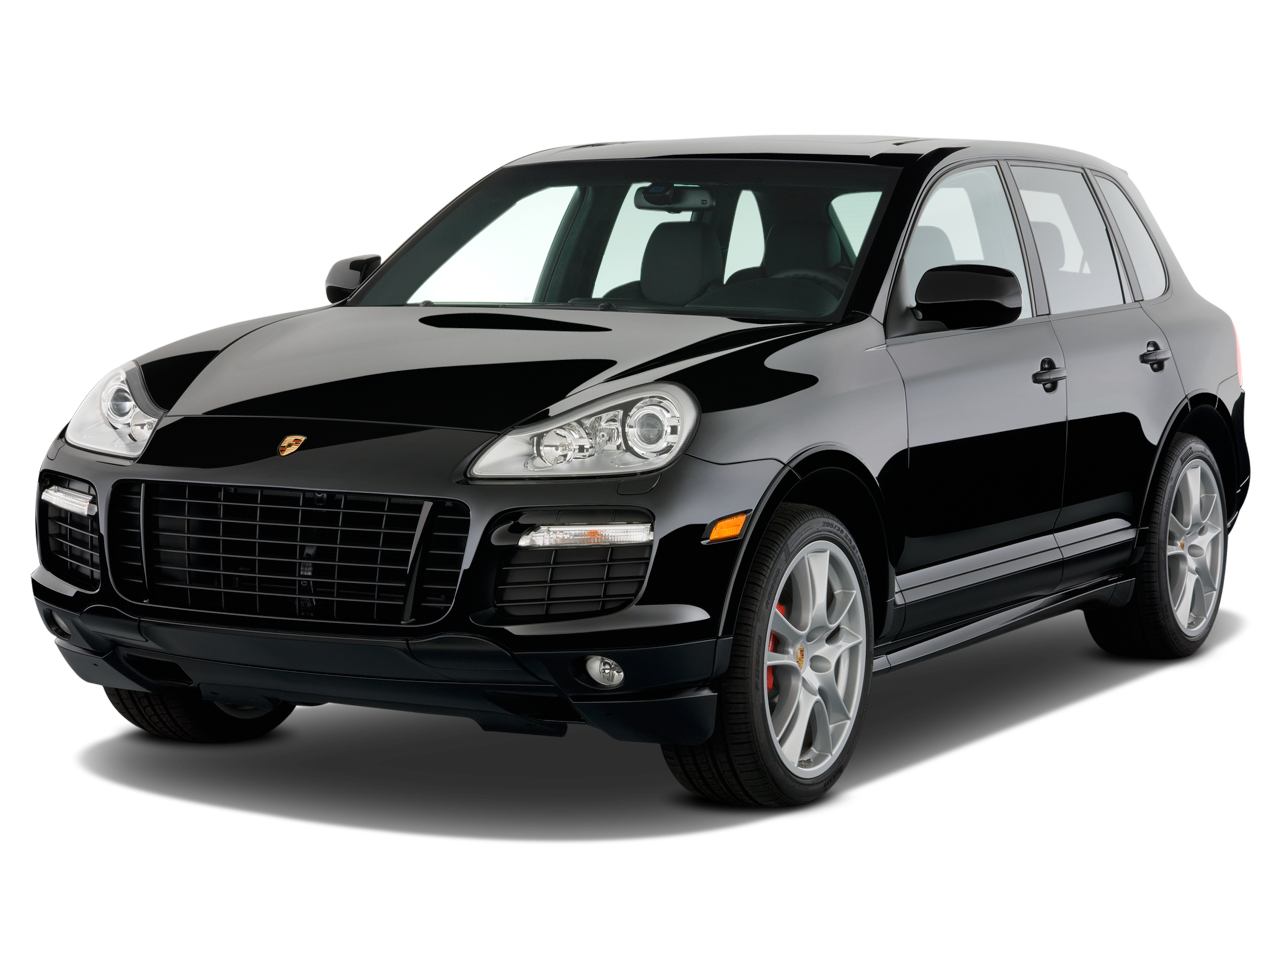 2008 porsche cayenne gts porsche sports suv automobile. Black Bedroom Furniture Sets. Home Design Ideas